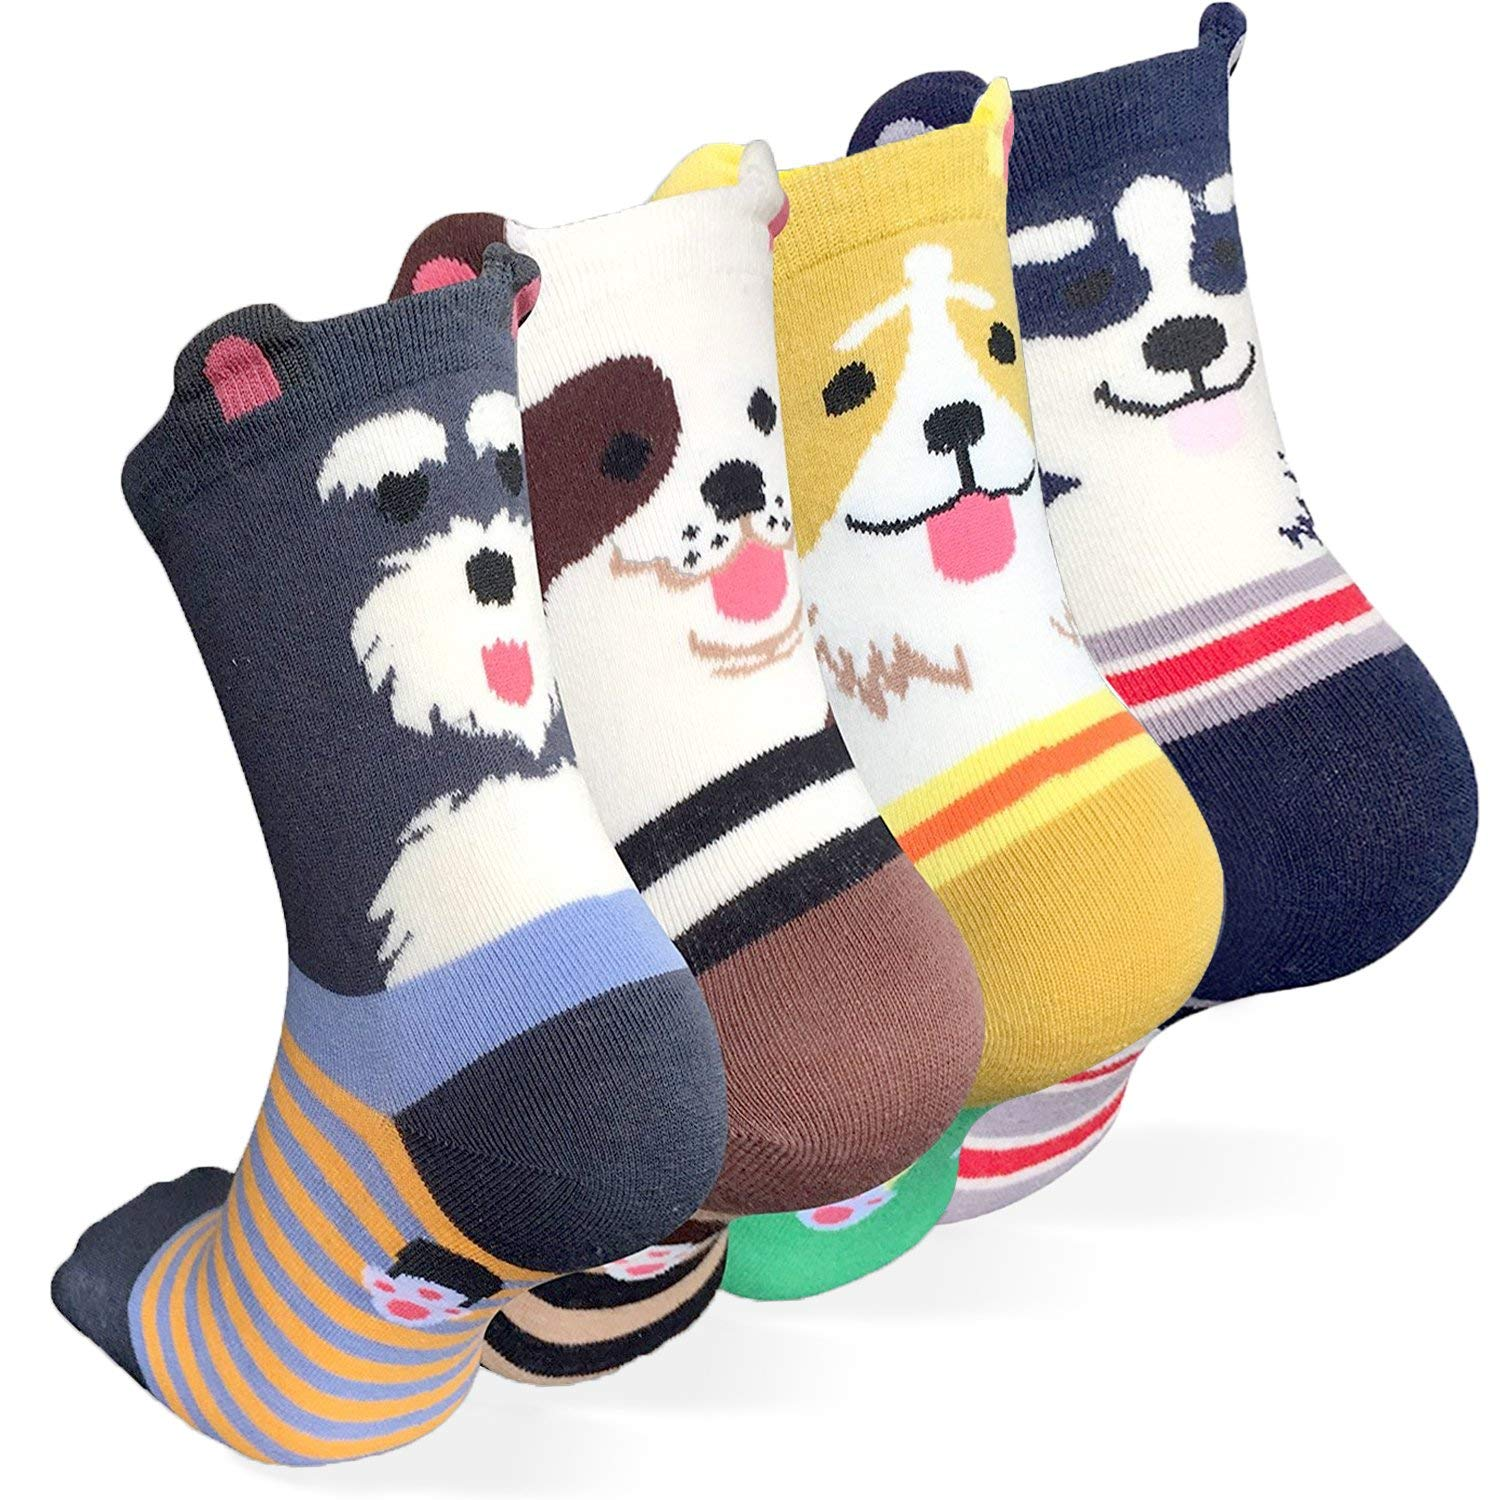 DearMy Womens Cute Design Casual Cotton Crew Socks | Good for Gift Idea| One Size Fits All | Gifts for Women